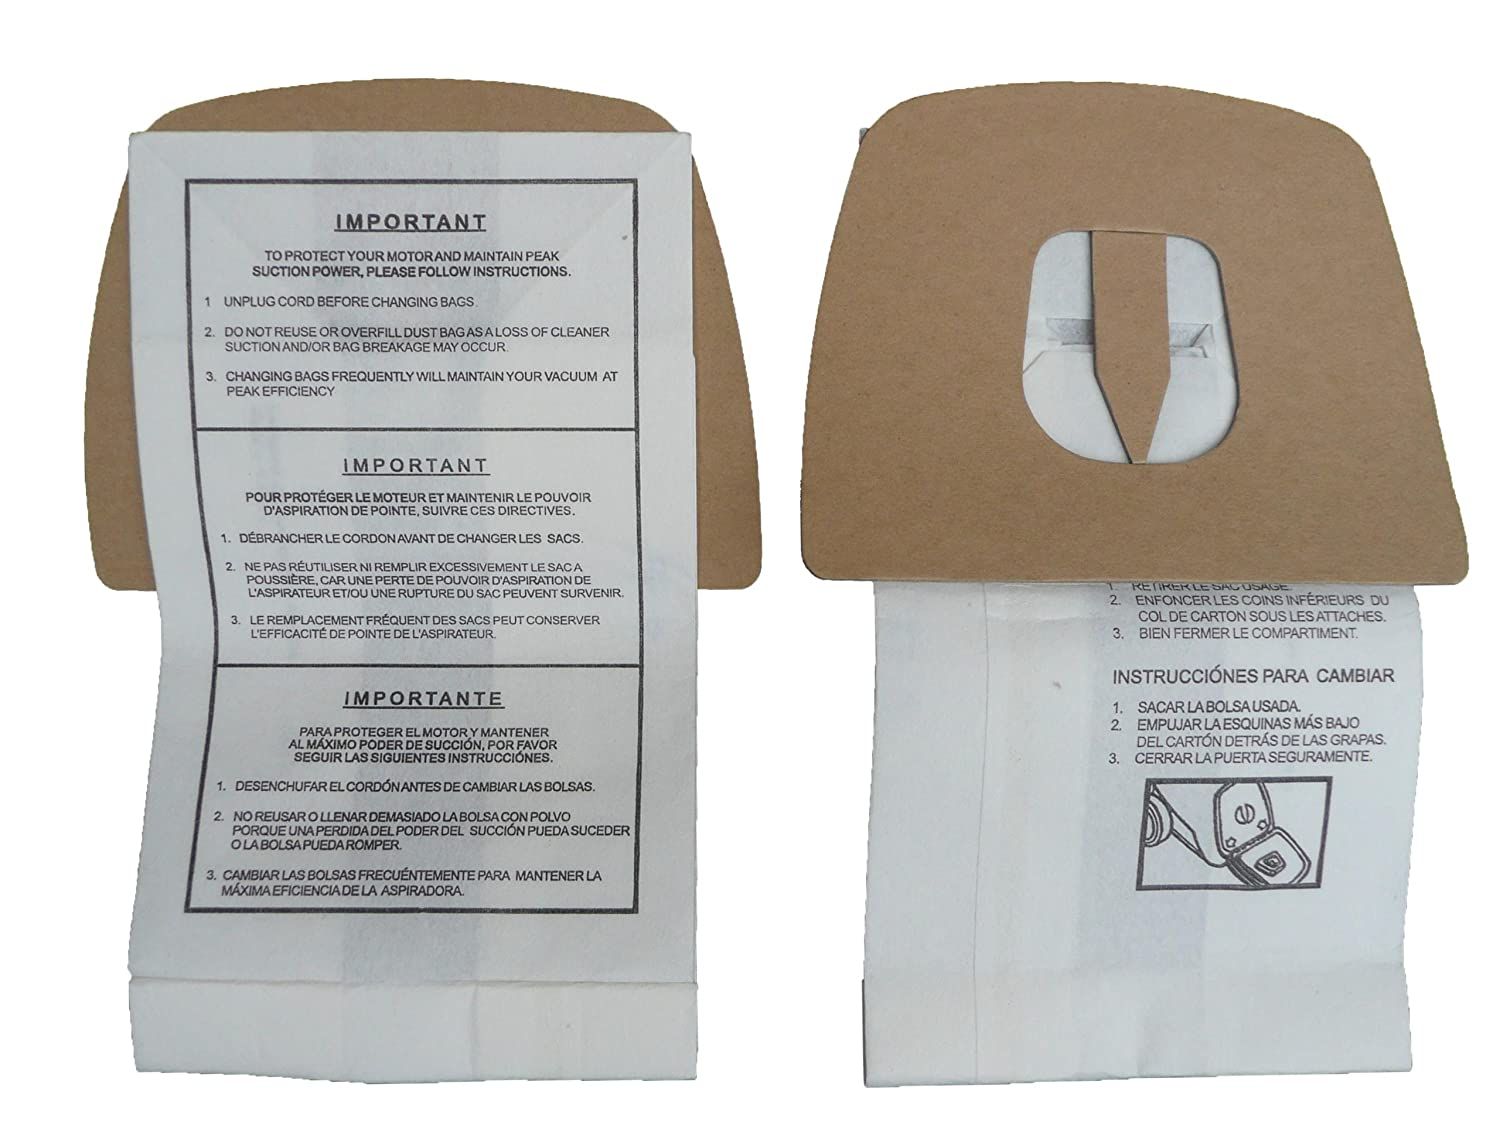 6 Royal Dirt Devil Canister Type F Allergy Vacuum Bags, Can Vac, Power Pak Vacuum Cleaners, 3-200147-001, 3200147001, 200147, RY200147, 3-300475-001, ...